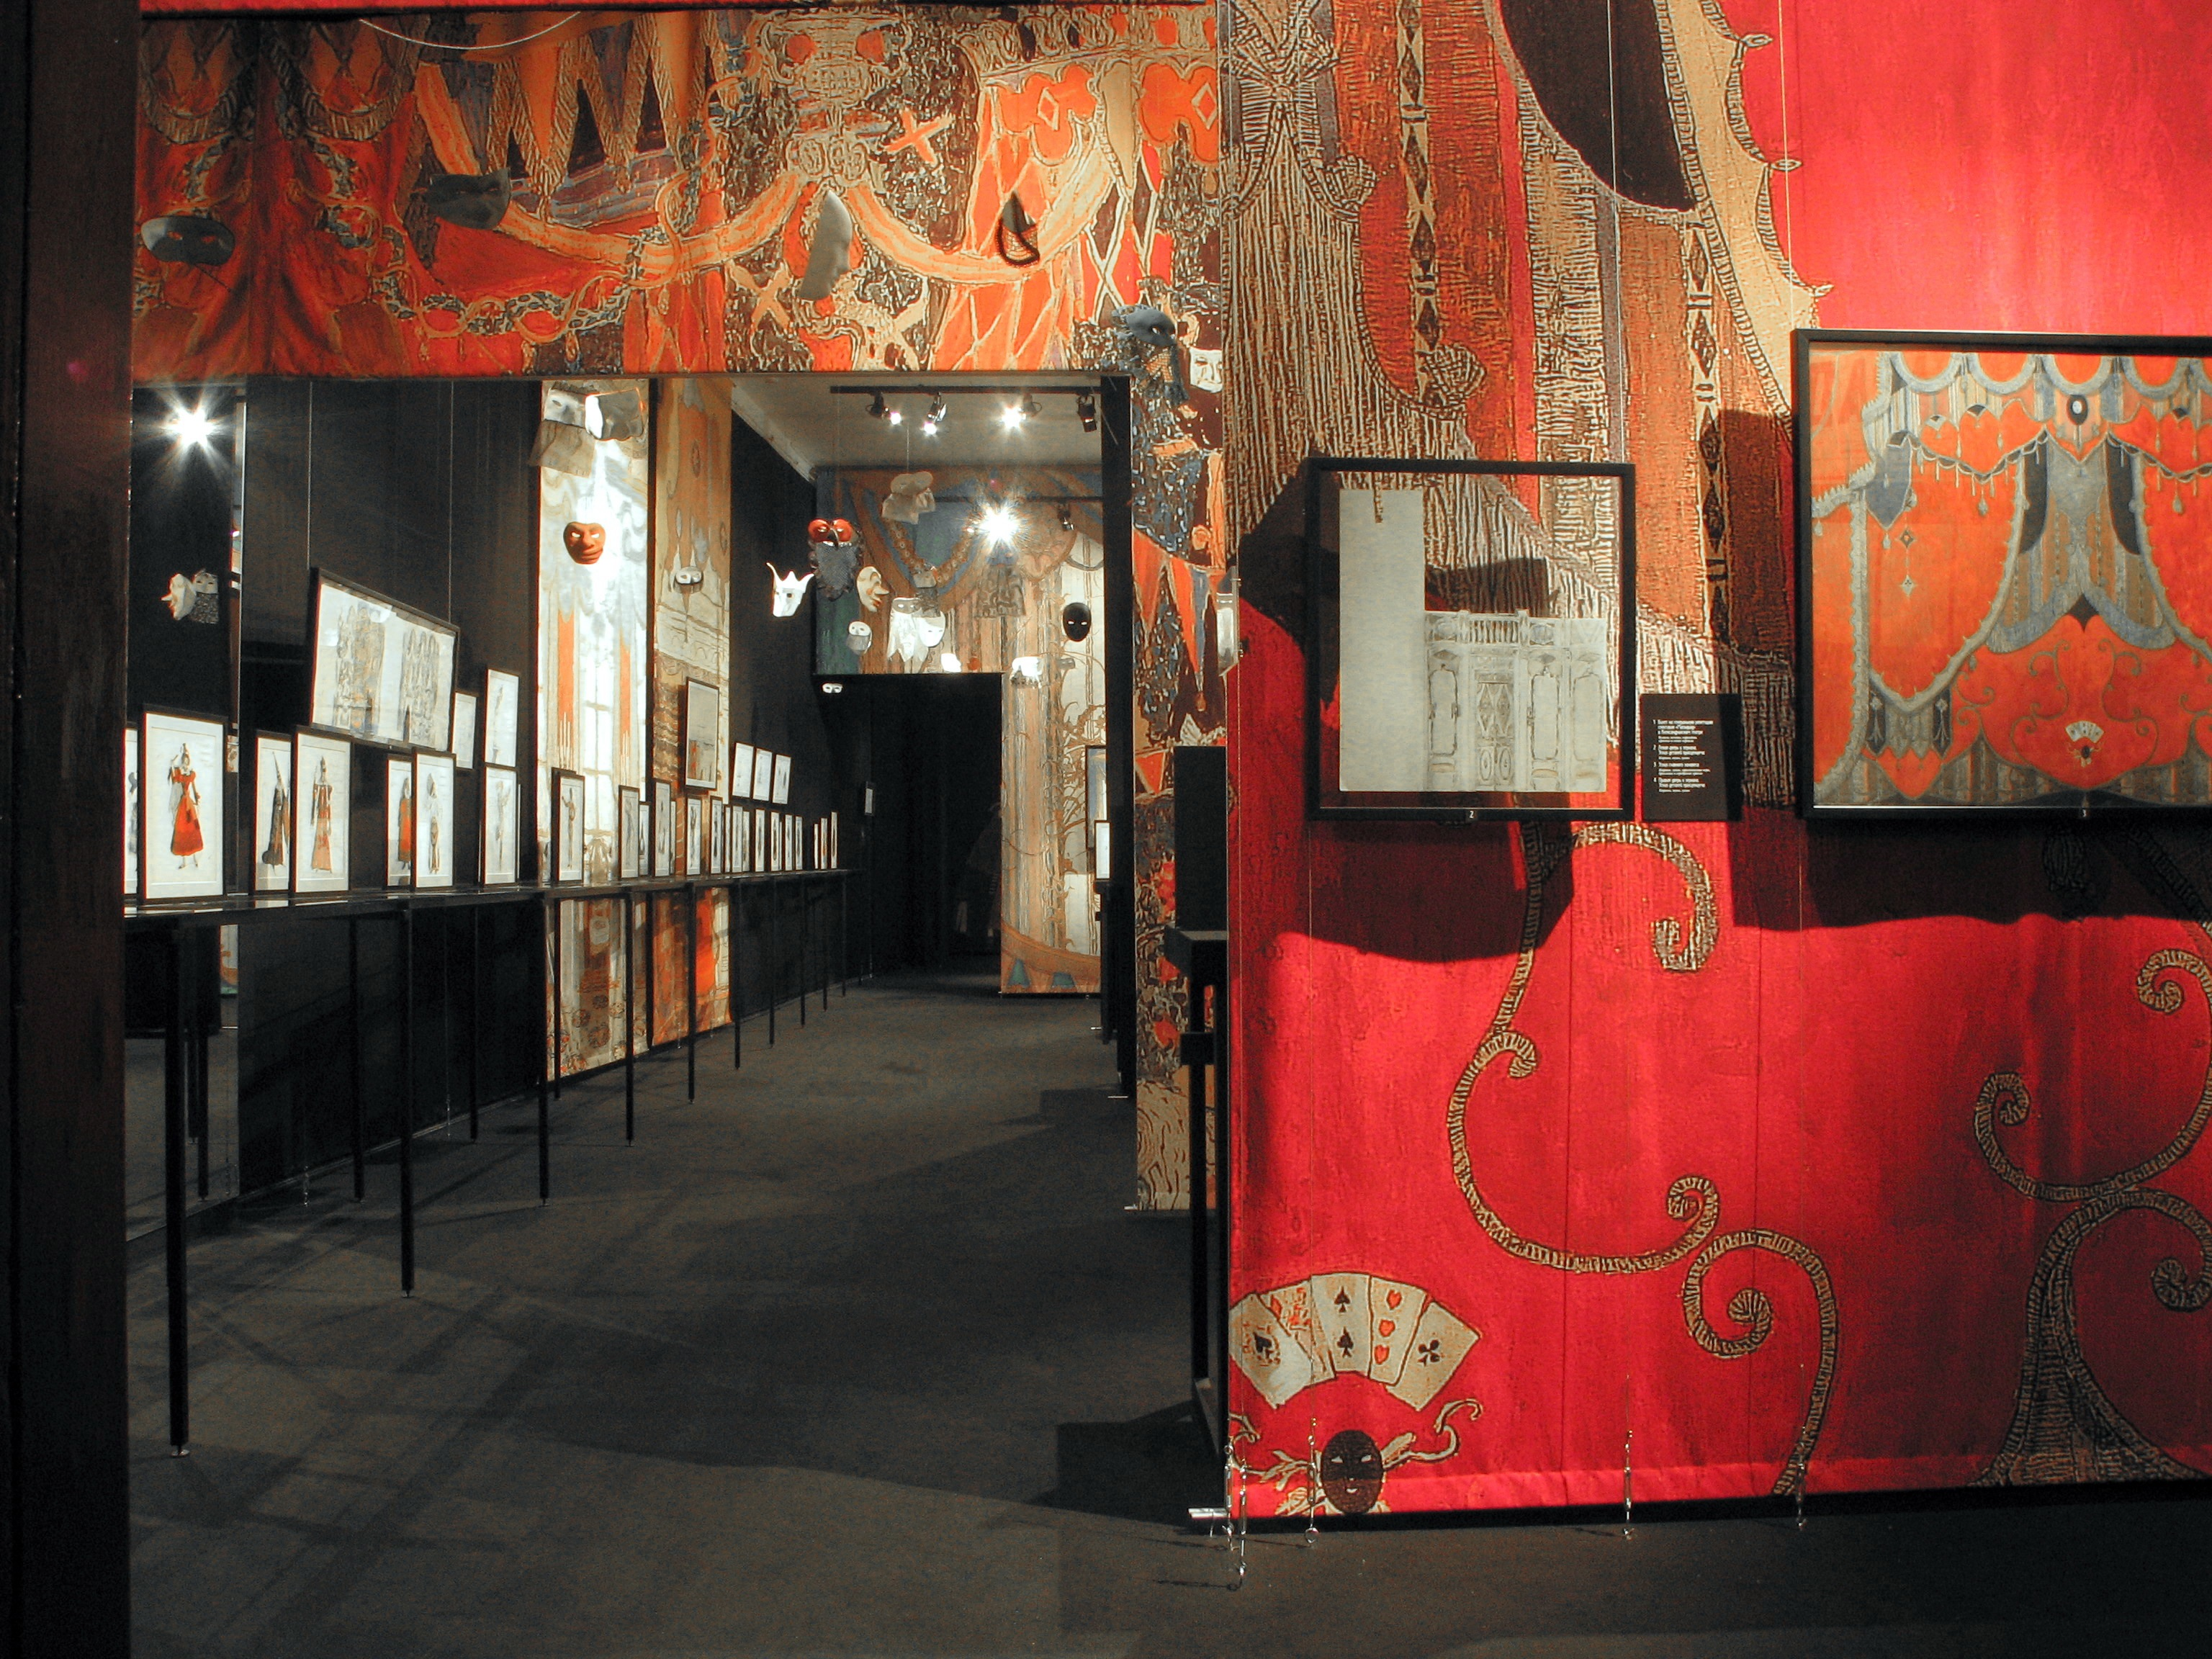 Exhibition «Masquerade» to commemorate the 90th anniversary of the production by Meyerhold and Golovin in Alexandrinsky Theatre. From the collection of the State Central Theatre Museum named after A.A. Bakhrushin